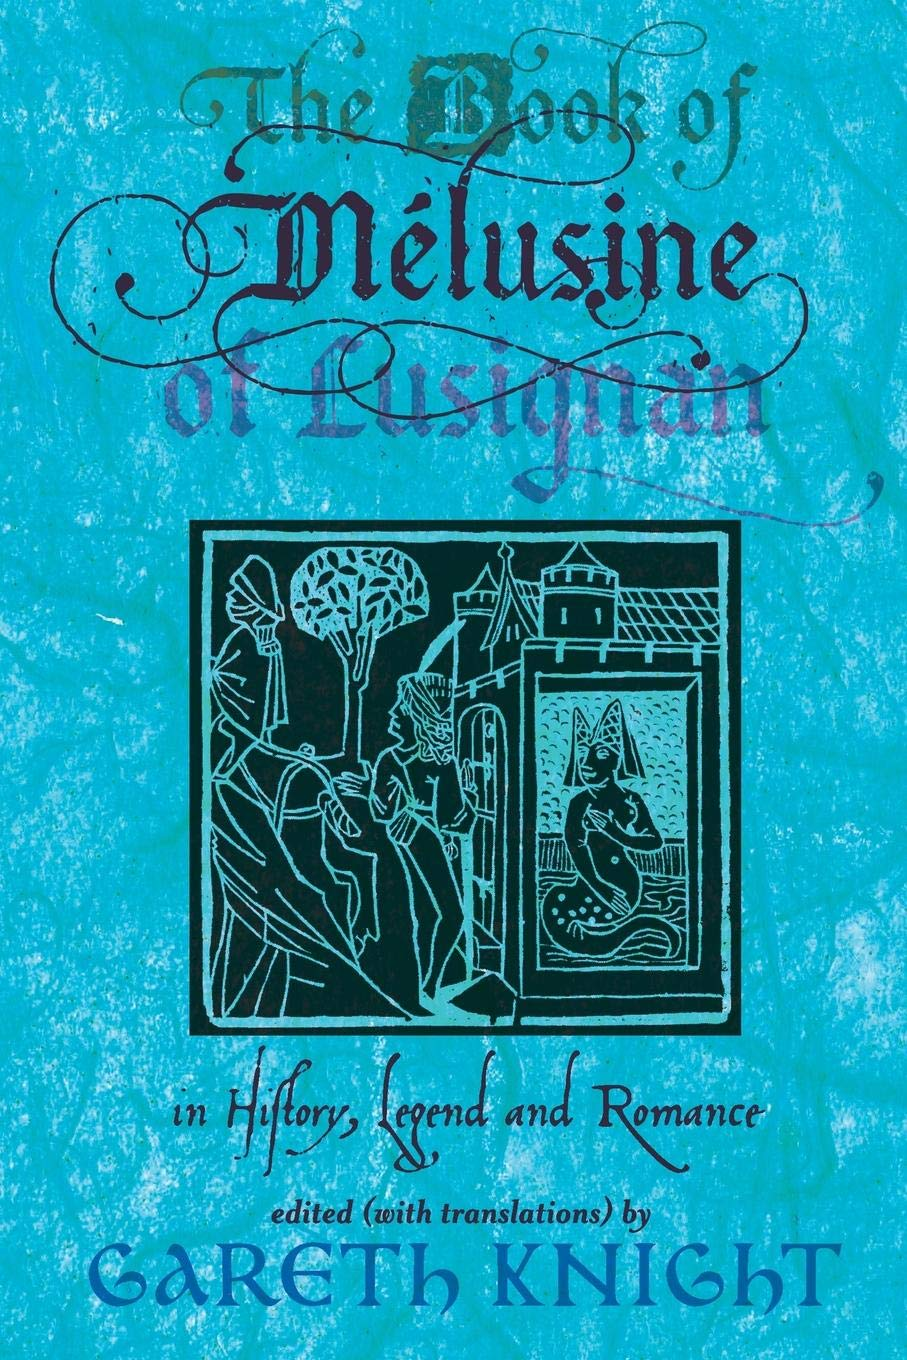 The Book of Melusine of Lusignan